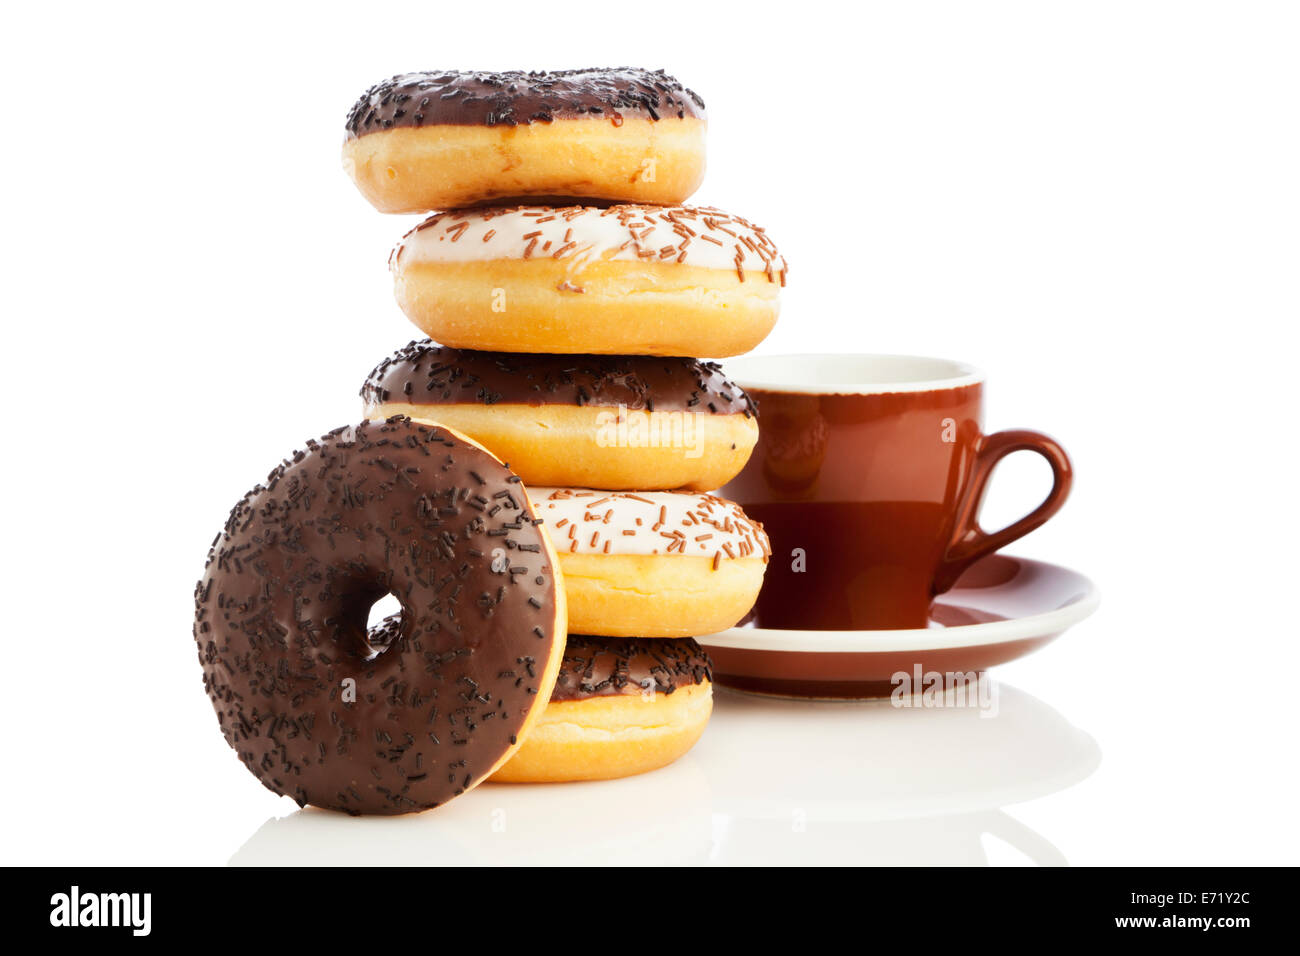 Stacked dark and white chocolate sprinkle donuts and coffee cup isolated on white background - Stock Image